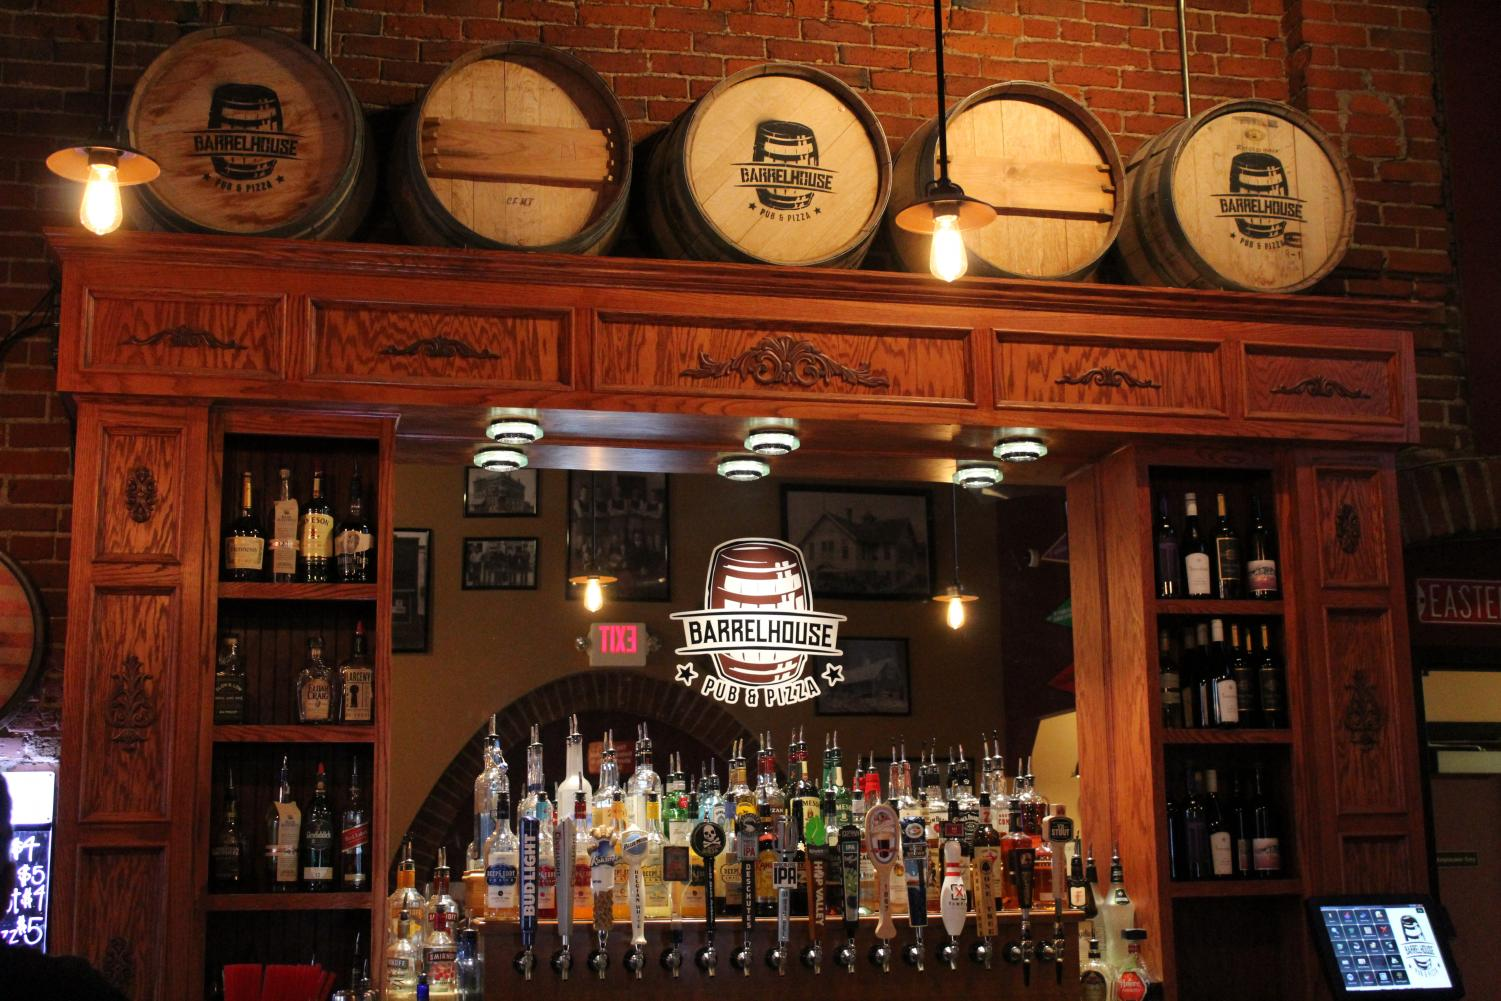 Barrelhouse Pub & Pizza has daily drink specials. The location opened last year in January | Mckenzie Ford for The Easterner